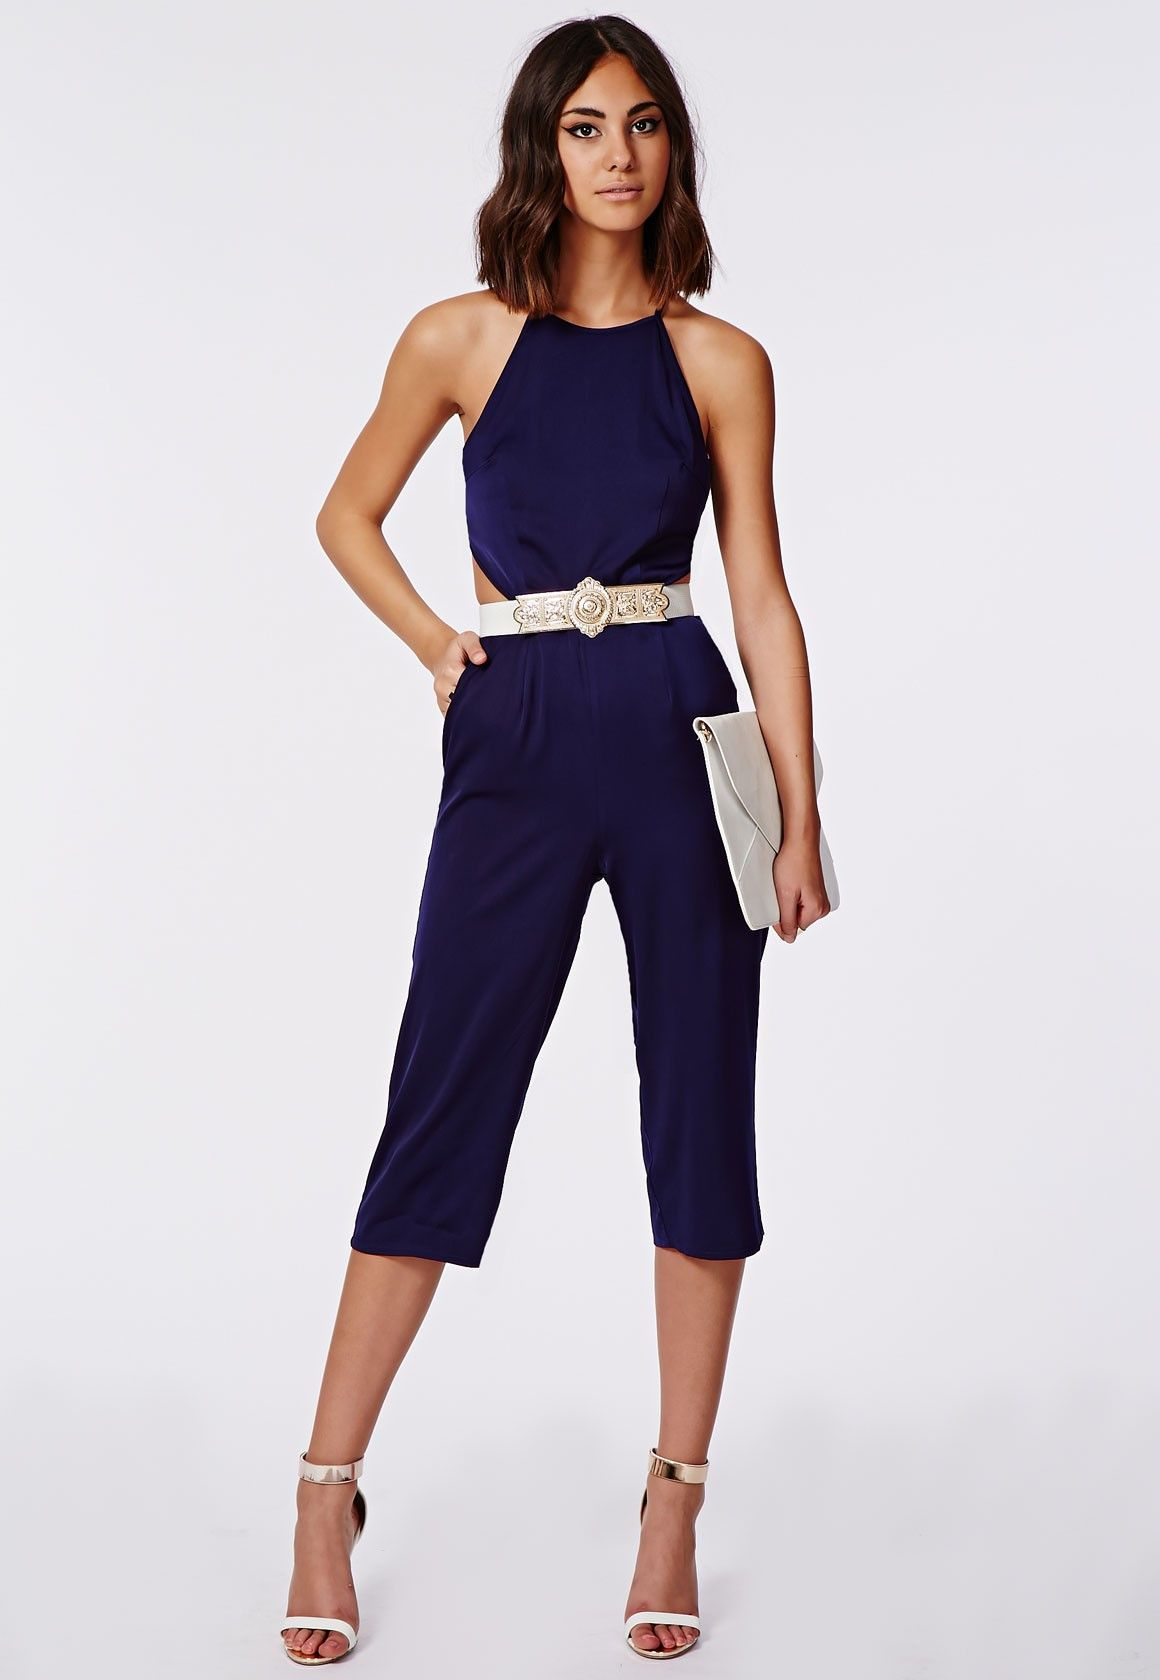 7b7e513102d1 Royah Silky Backless Culotte Jumpsuit Navy - Jumpsuits - Evening Jumpsuits  - Missguided